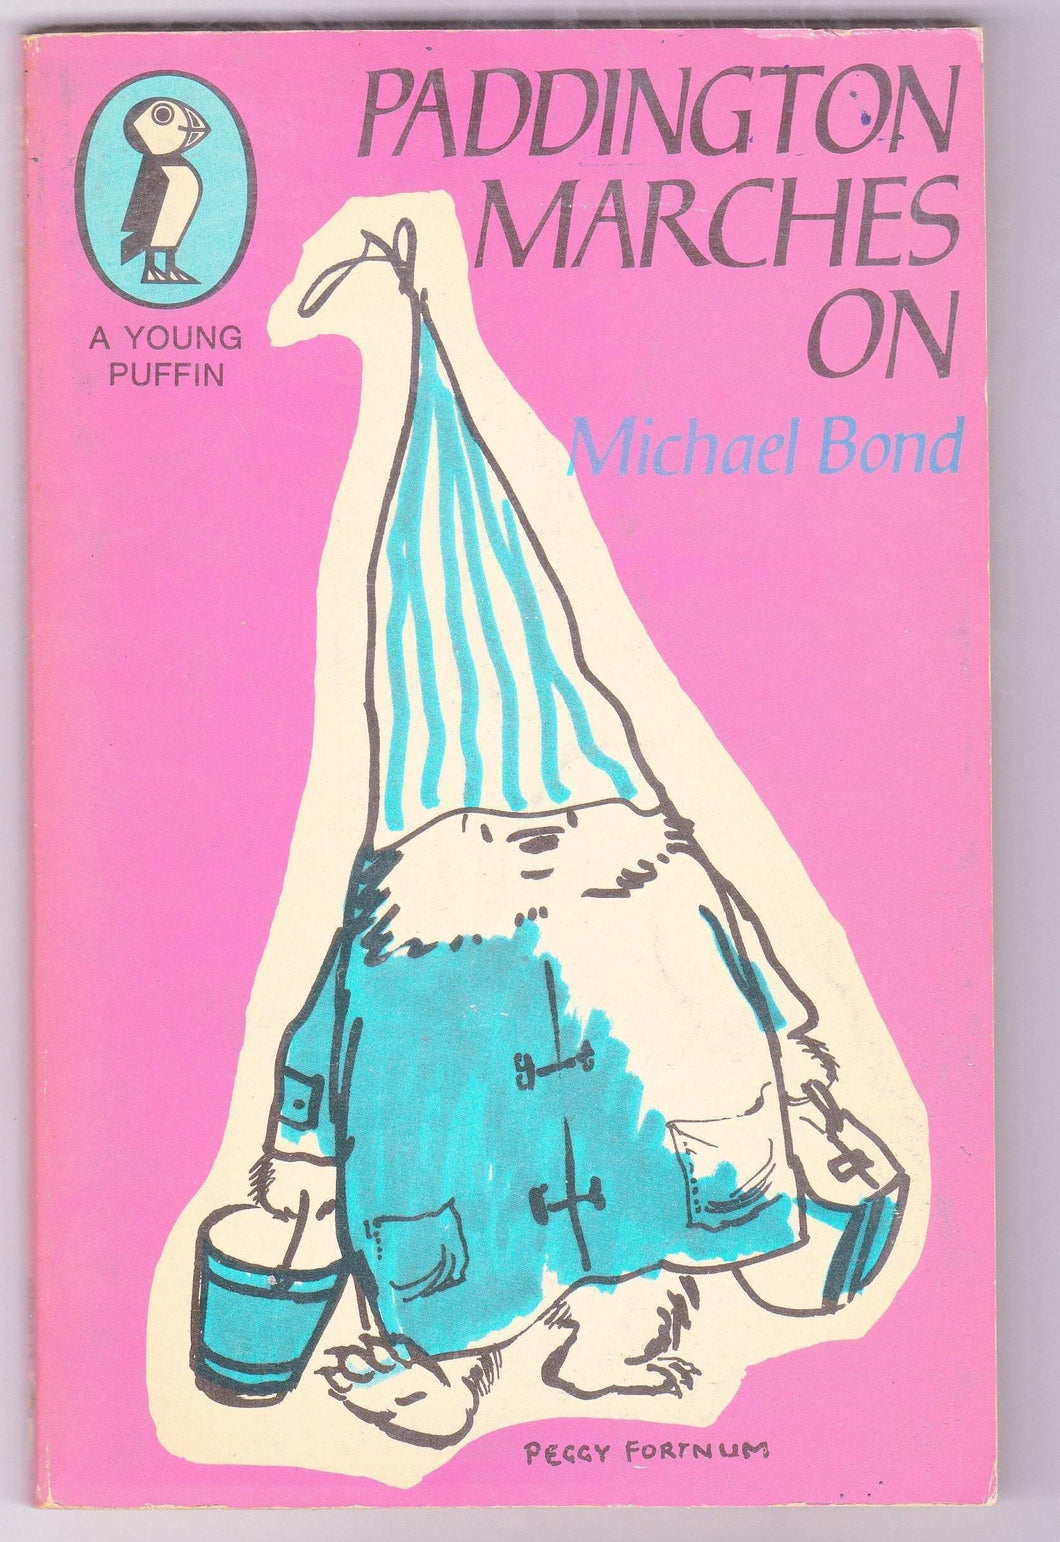 Paddington Marches On Michael Bond Paperback Young Puffin Edition Great Britain 1971 - TulipStuff